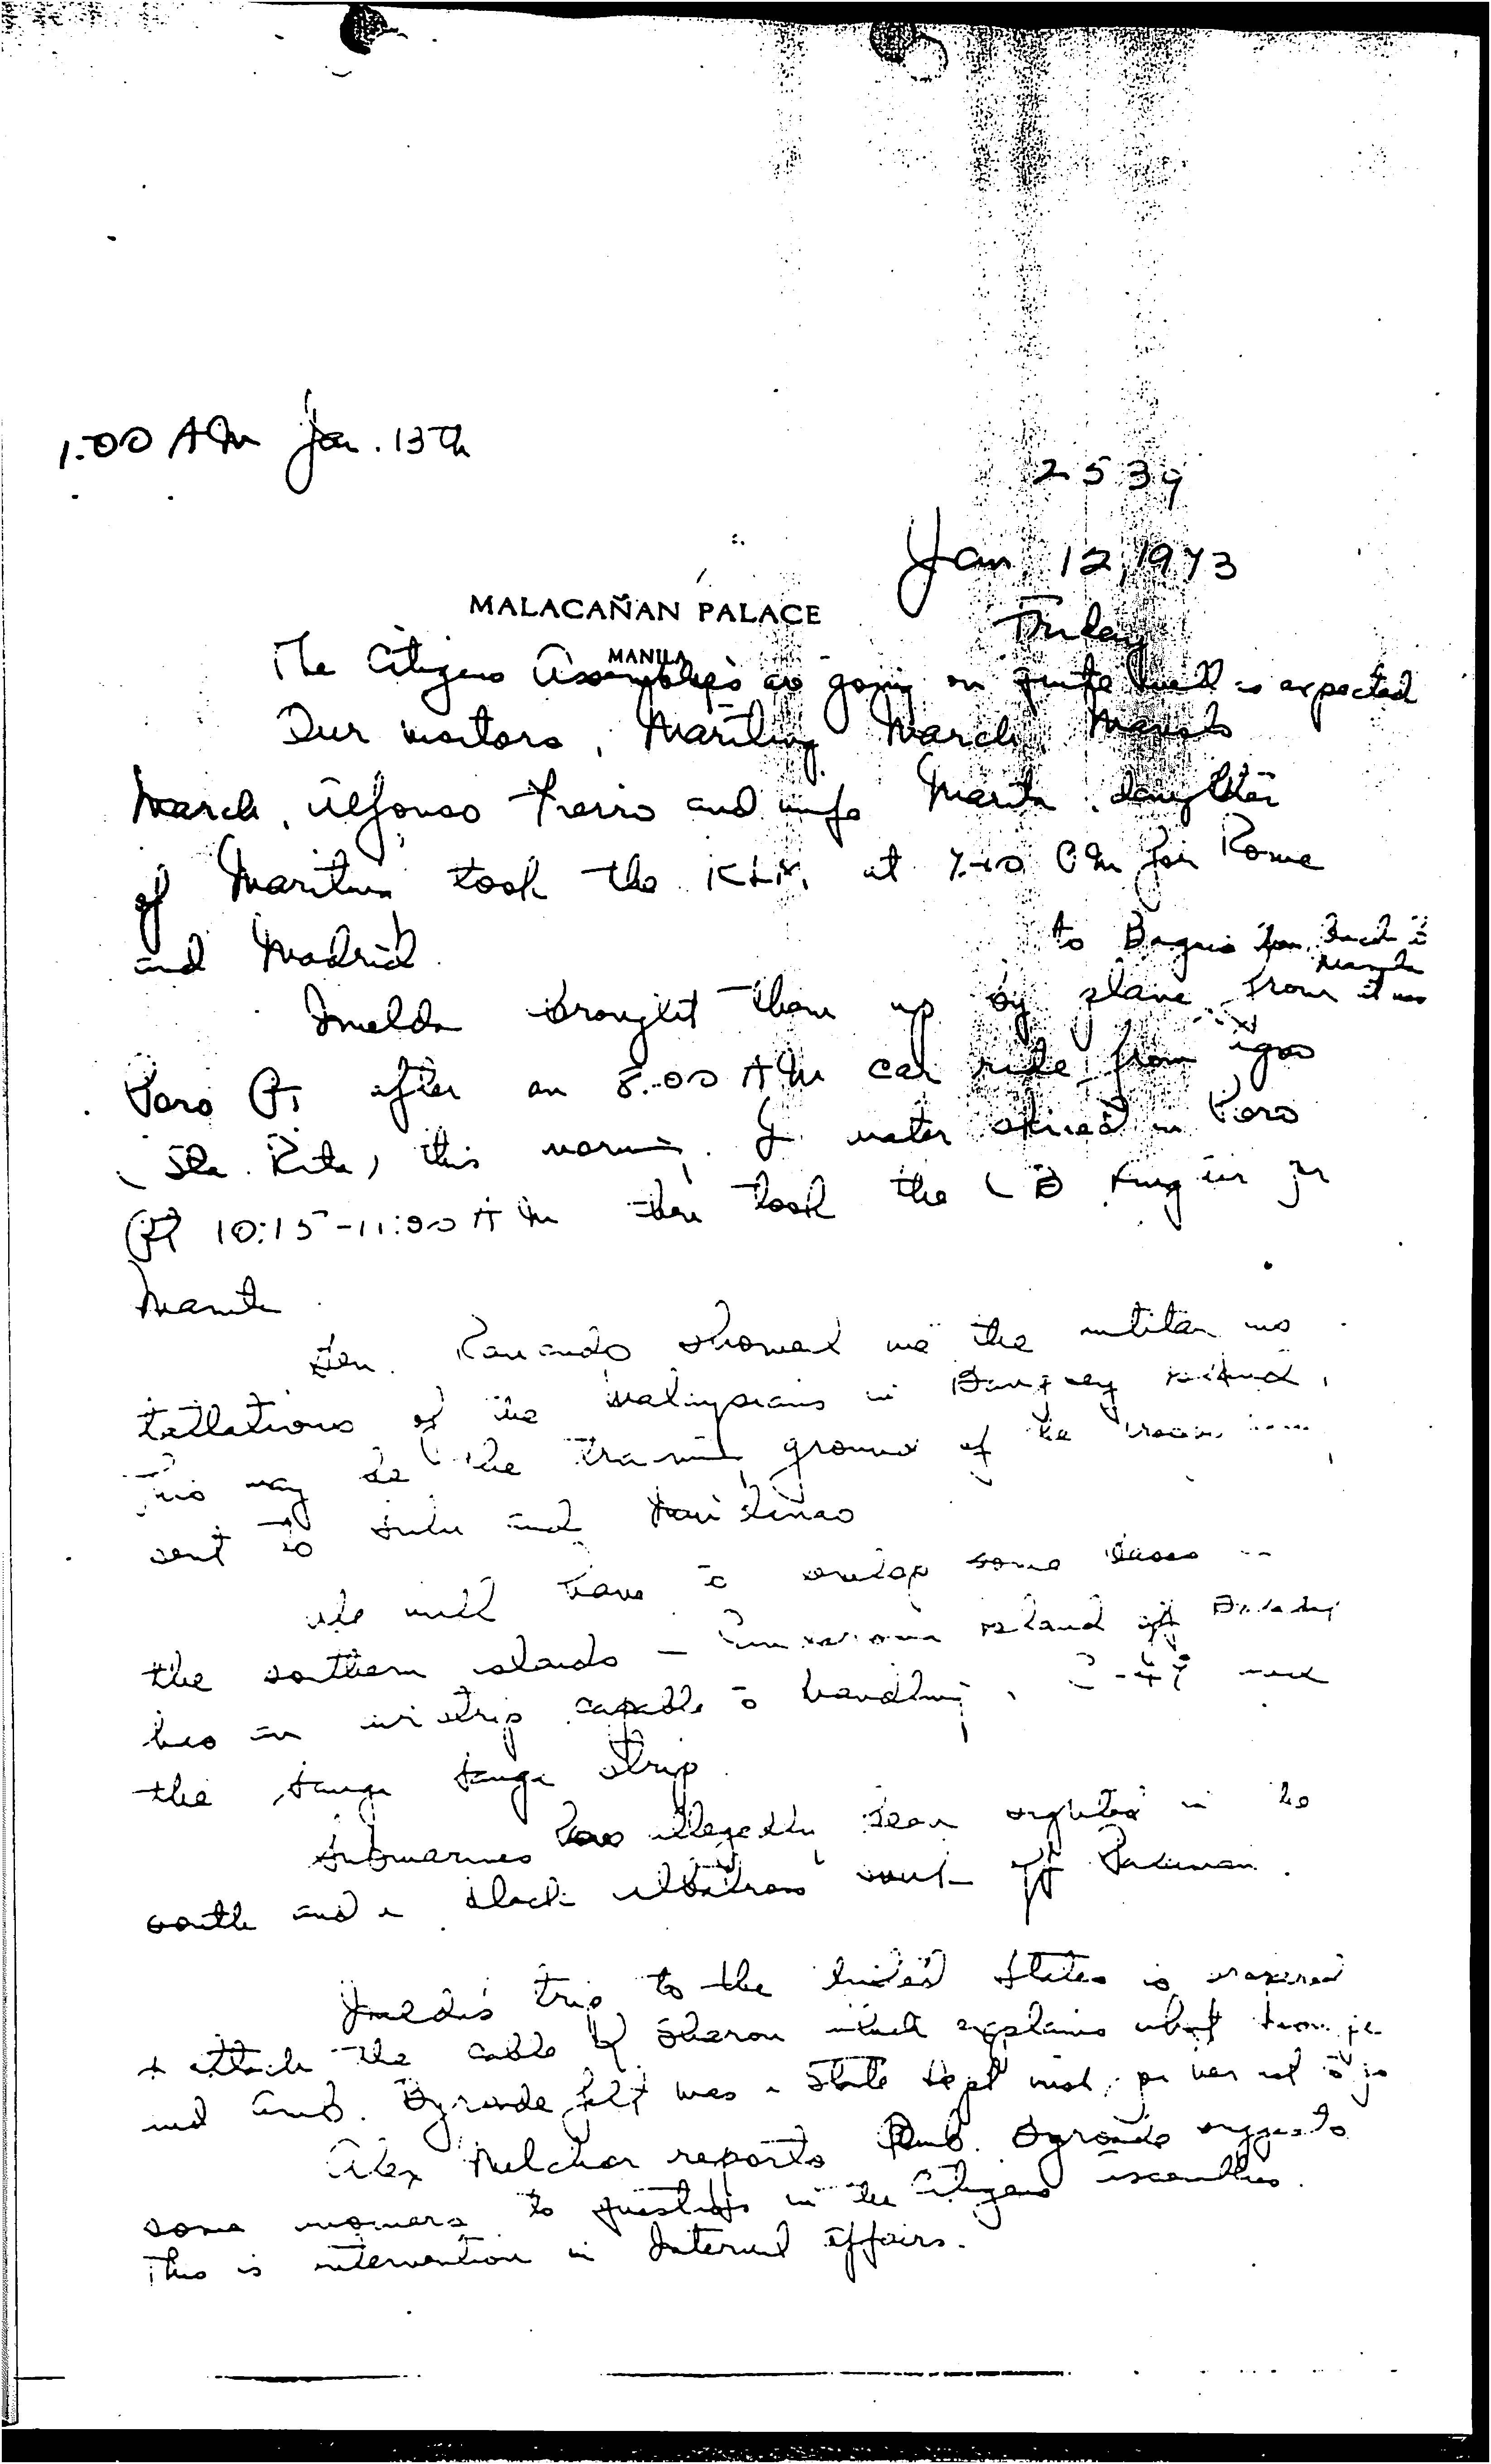 1973 Marcos Diary Black Book_Page_013.jpg